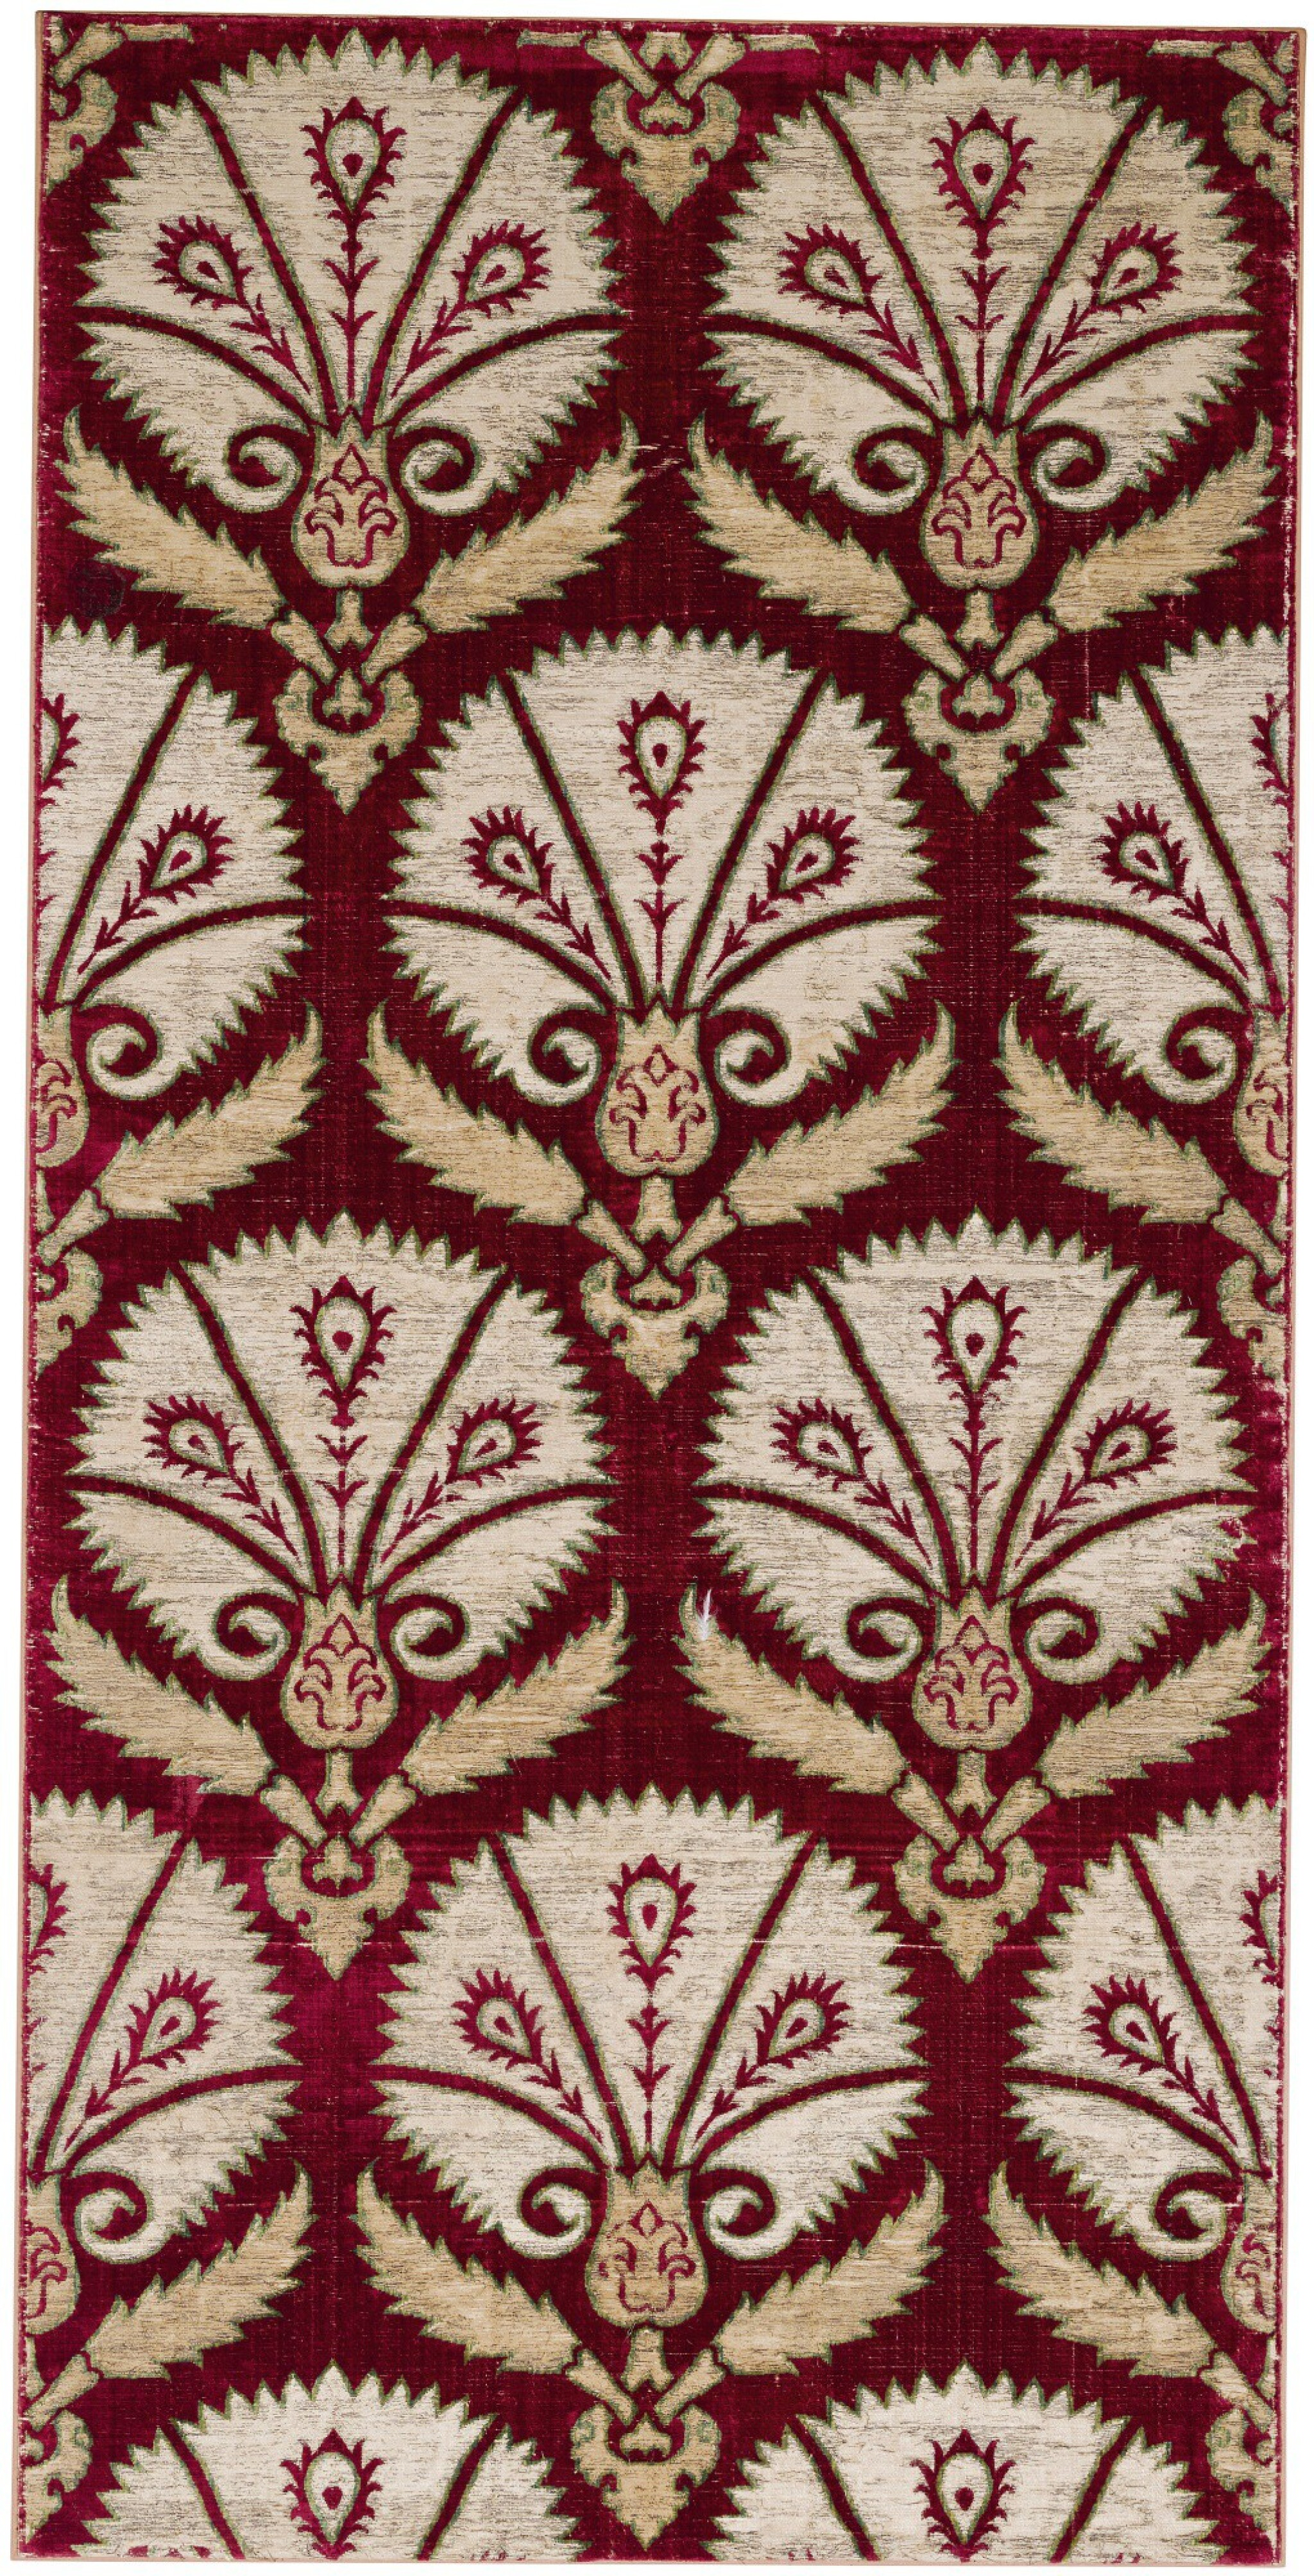 View full screen - View 1 of Lot 167. AN OTTOMAN VOIDED SILK VELVET METAL-THREAD (CATMA) PANEL WITH STYLISED PEACOCK FEATHERS WITHIN LARGE PALMETTES, TURKEY, BURSA OR ISTANBUL, EARLY 17TH CENTURY.